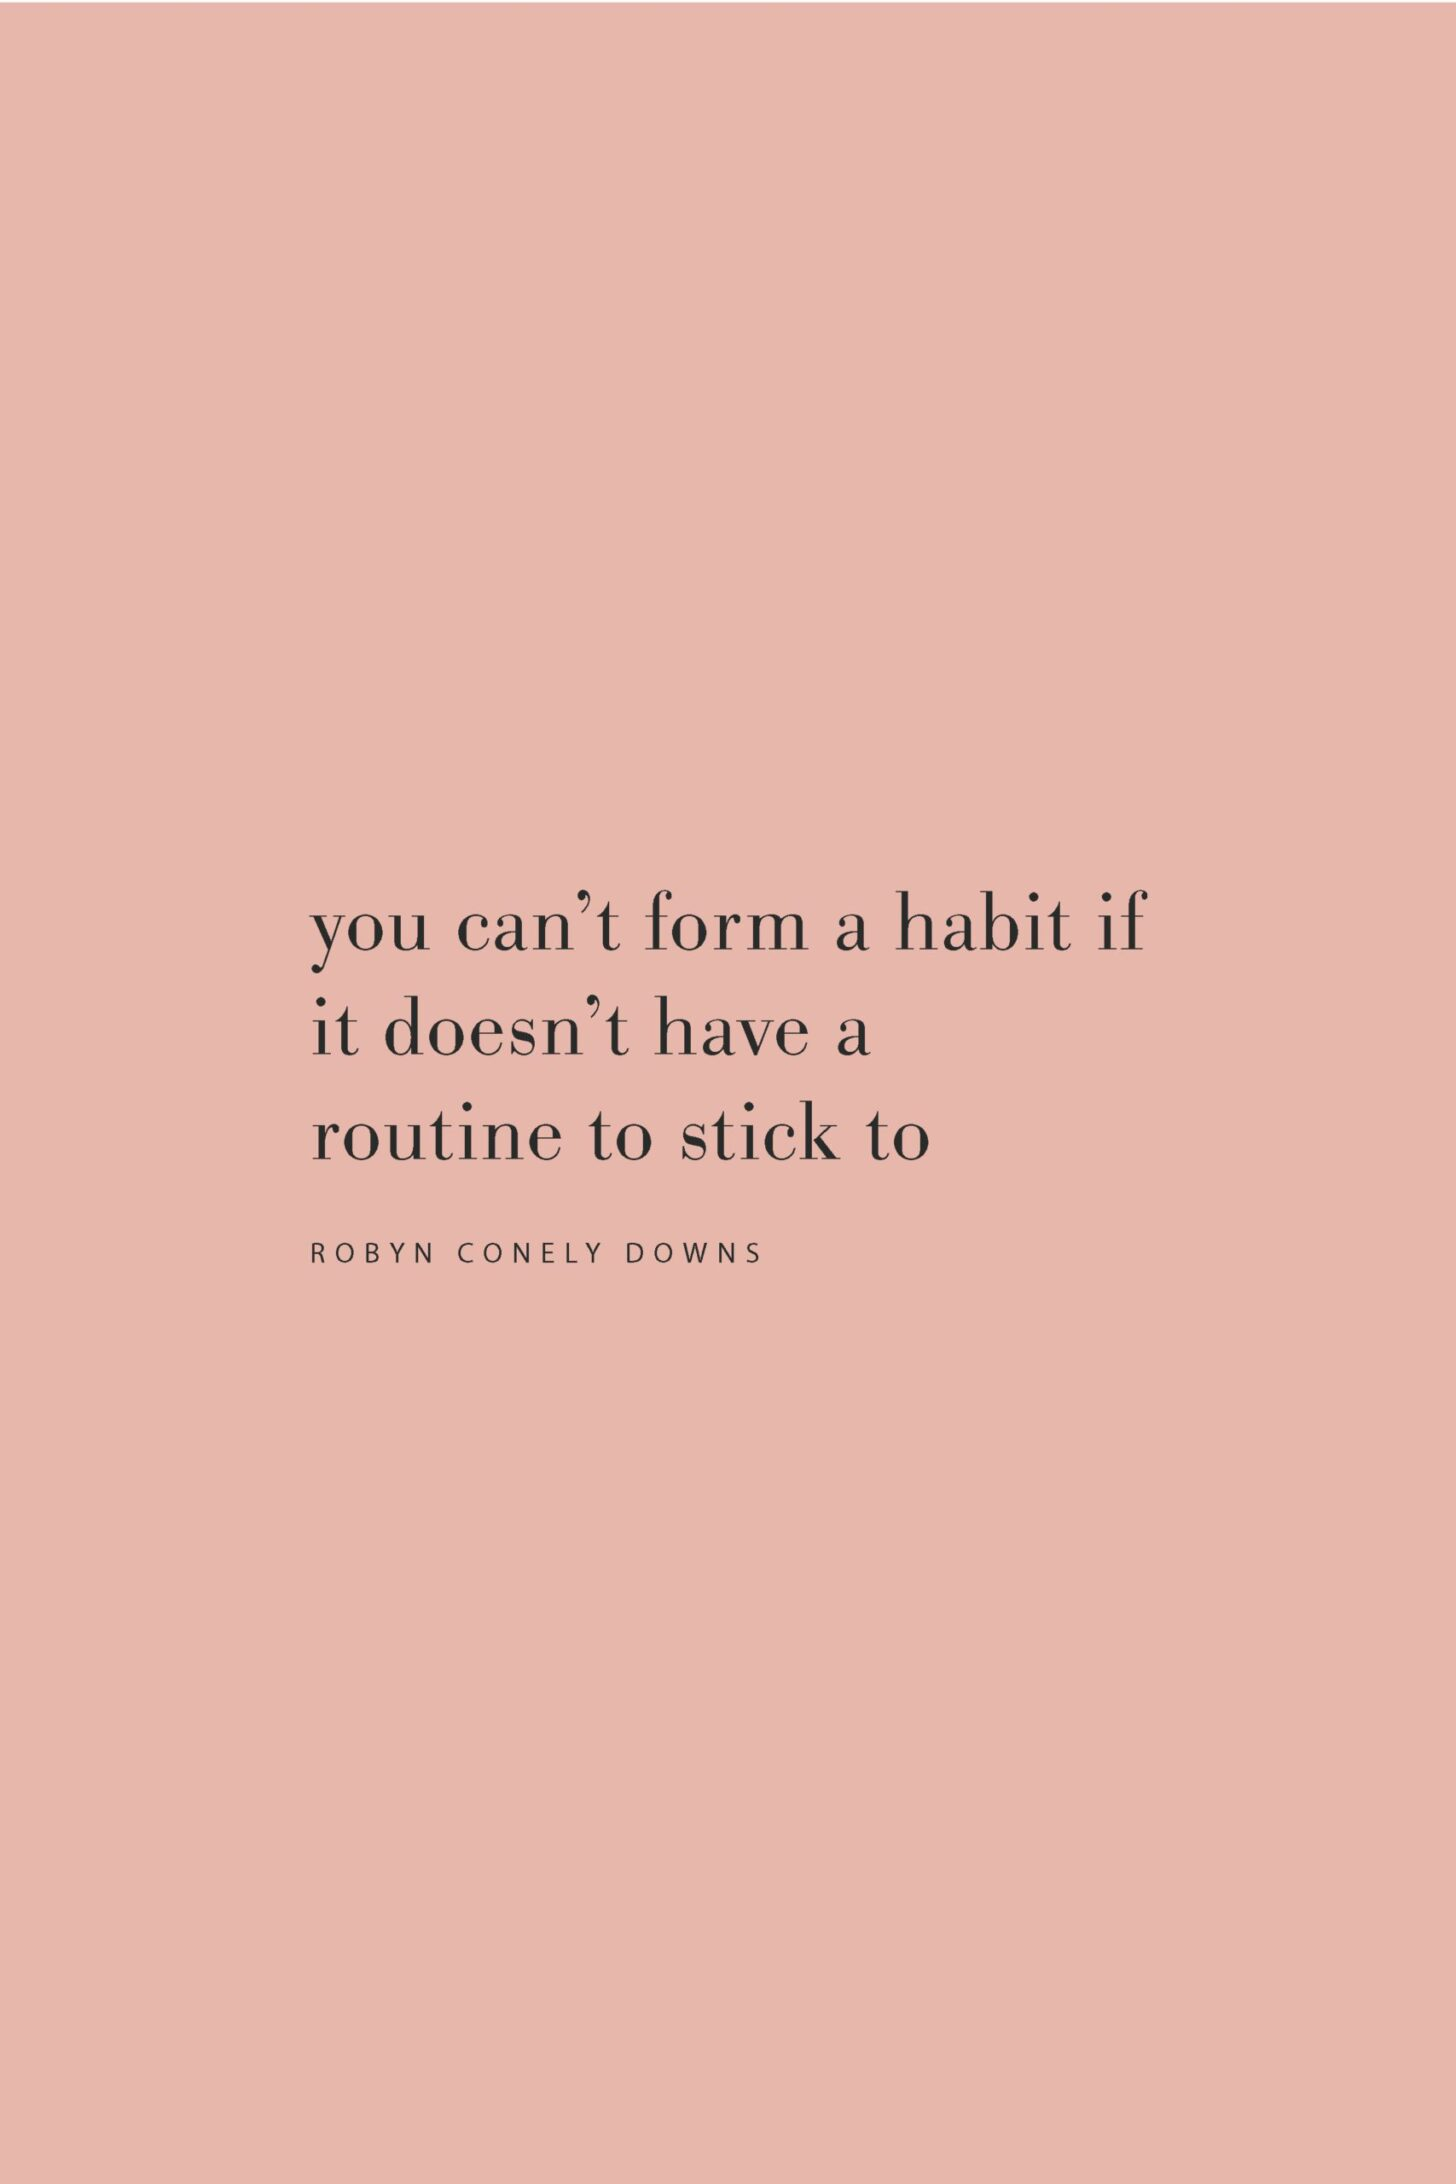 Quote on habit formation and routines by Robyn Conely Downs on the Feel Good Effect Podcast. #realfoodwholelife #feelgoodeffectpodcast #habitformaitonquote #howtocreatehabits #healthyhabitsquote #dailyroutinequotes #habitquotes #routinequotes